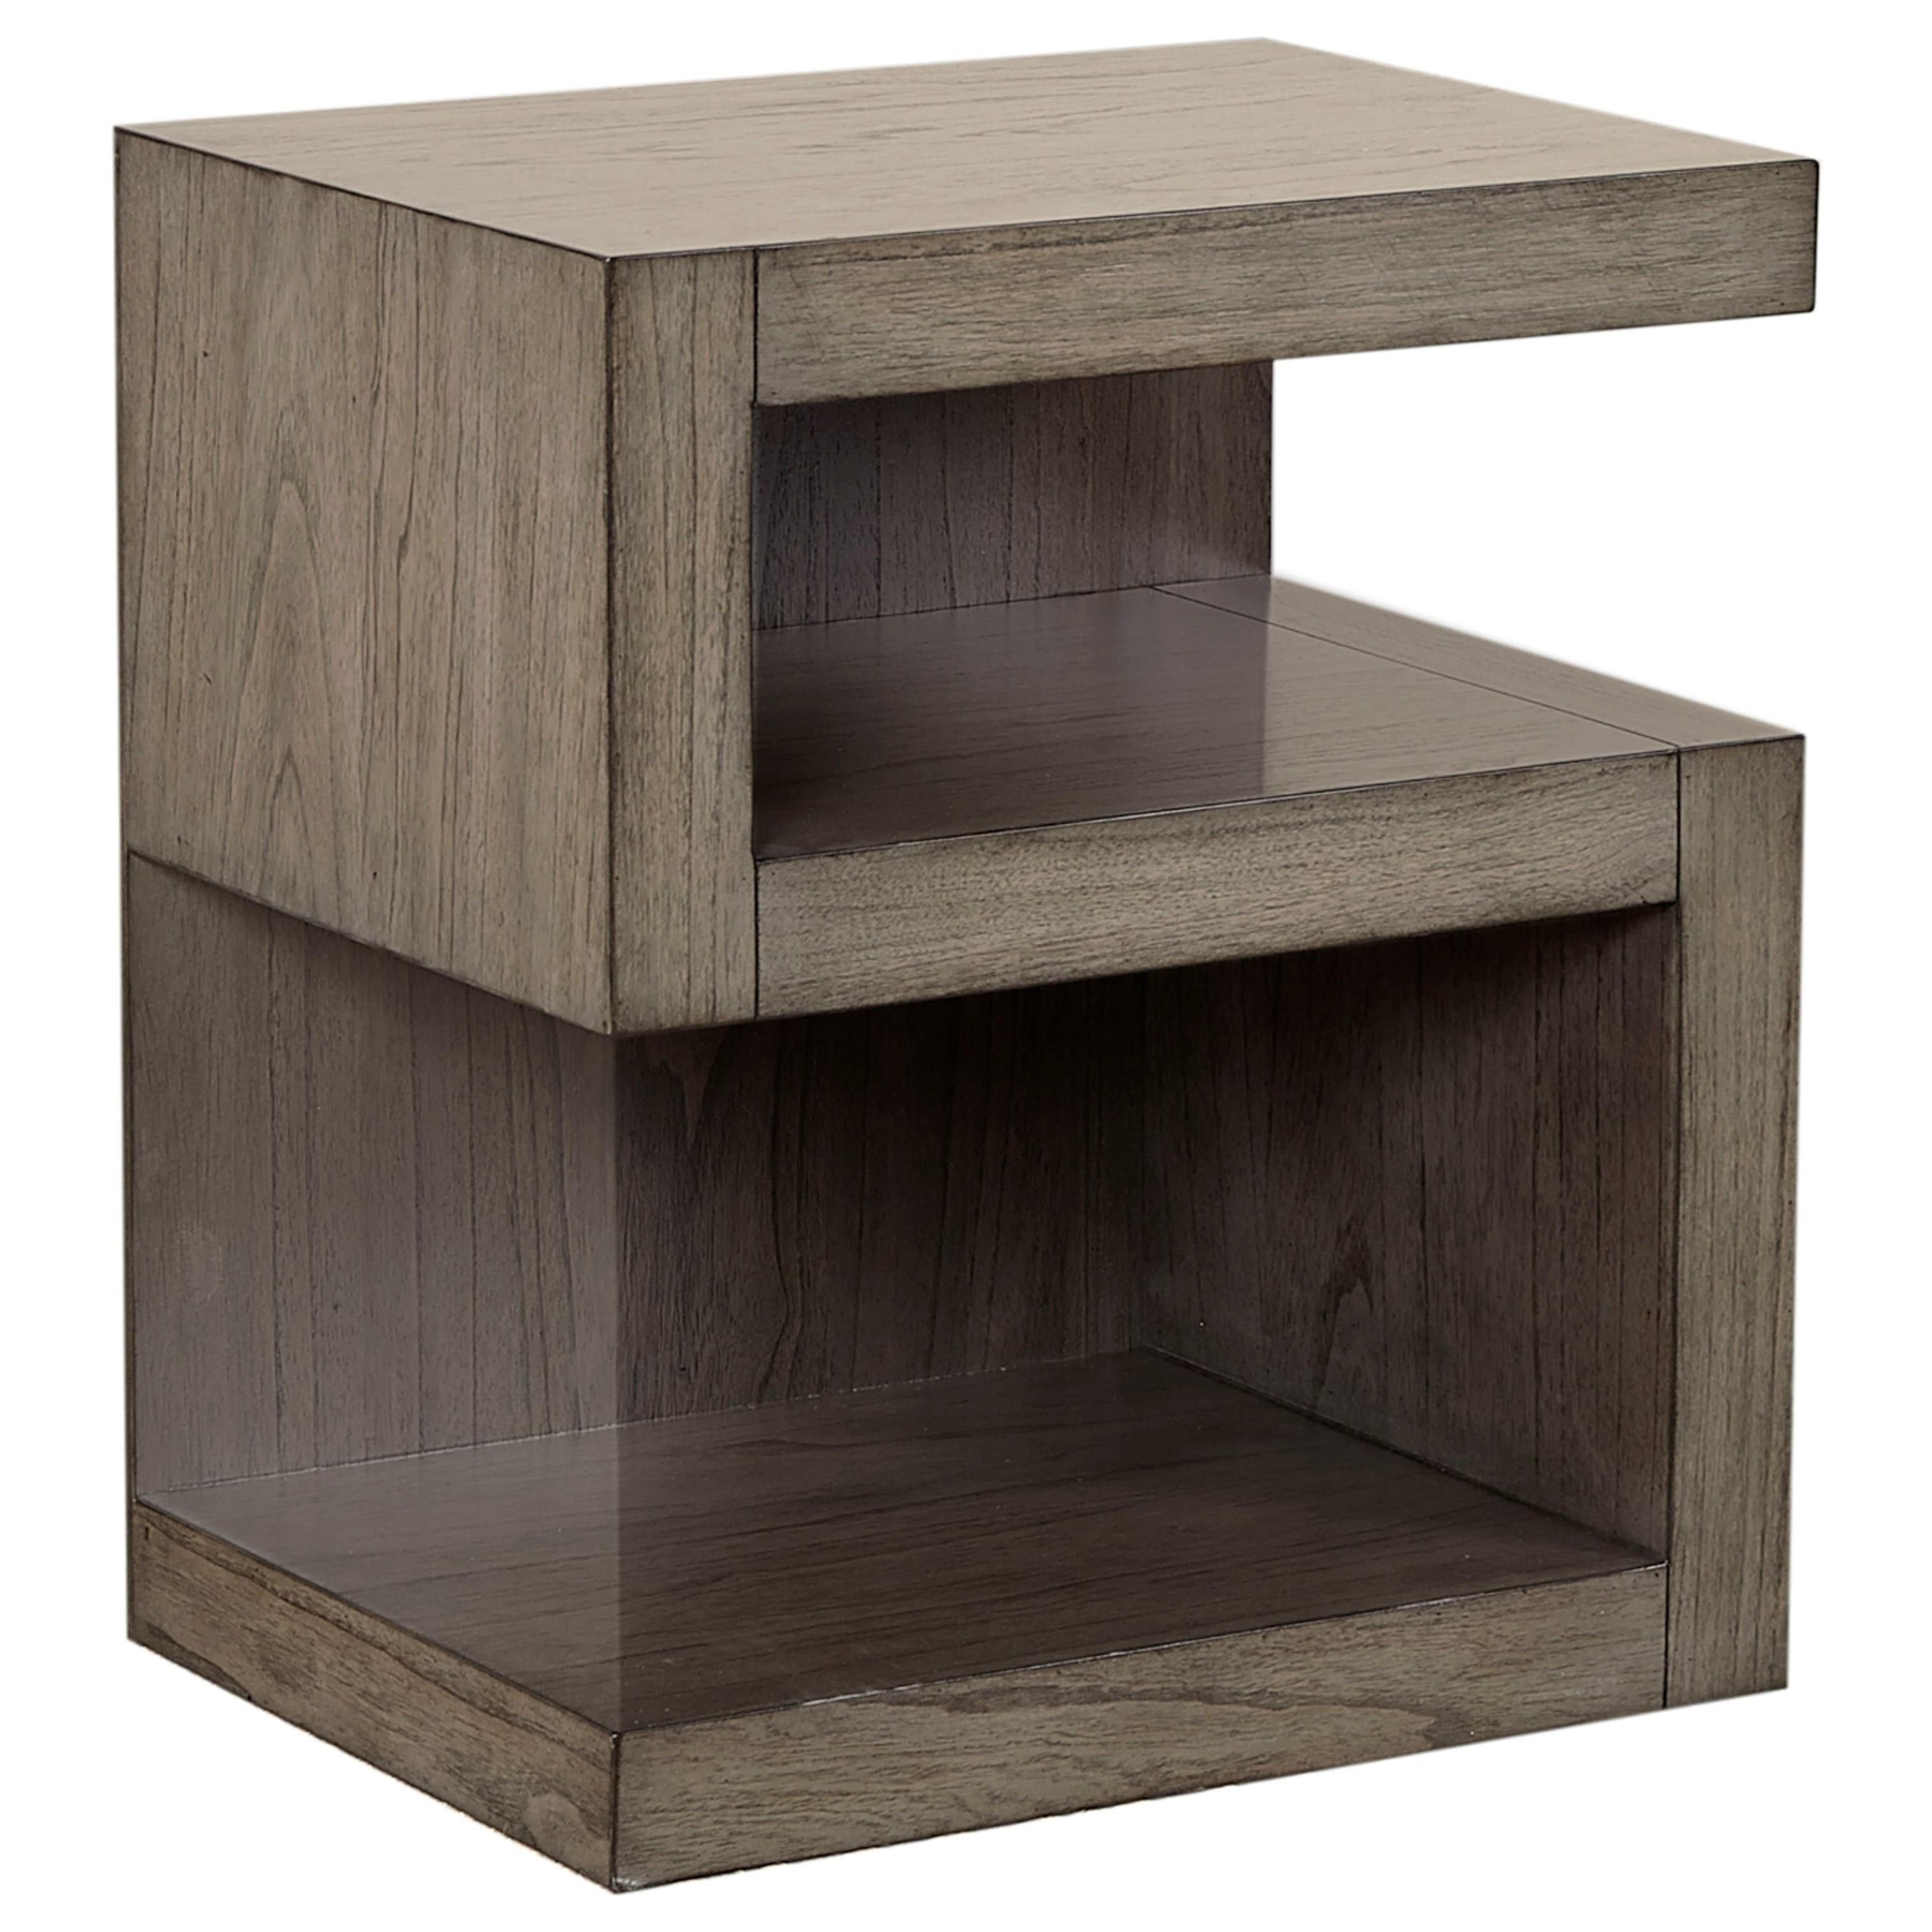 Modern Loft S Nightstand by Aspenhome at Darvin Furniture